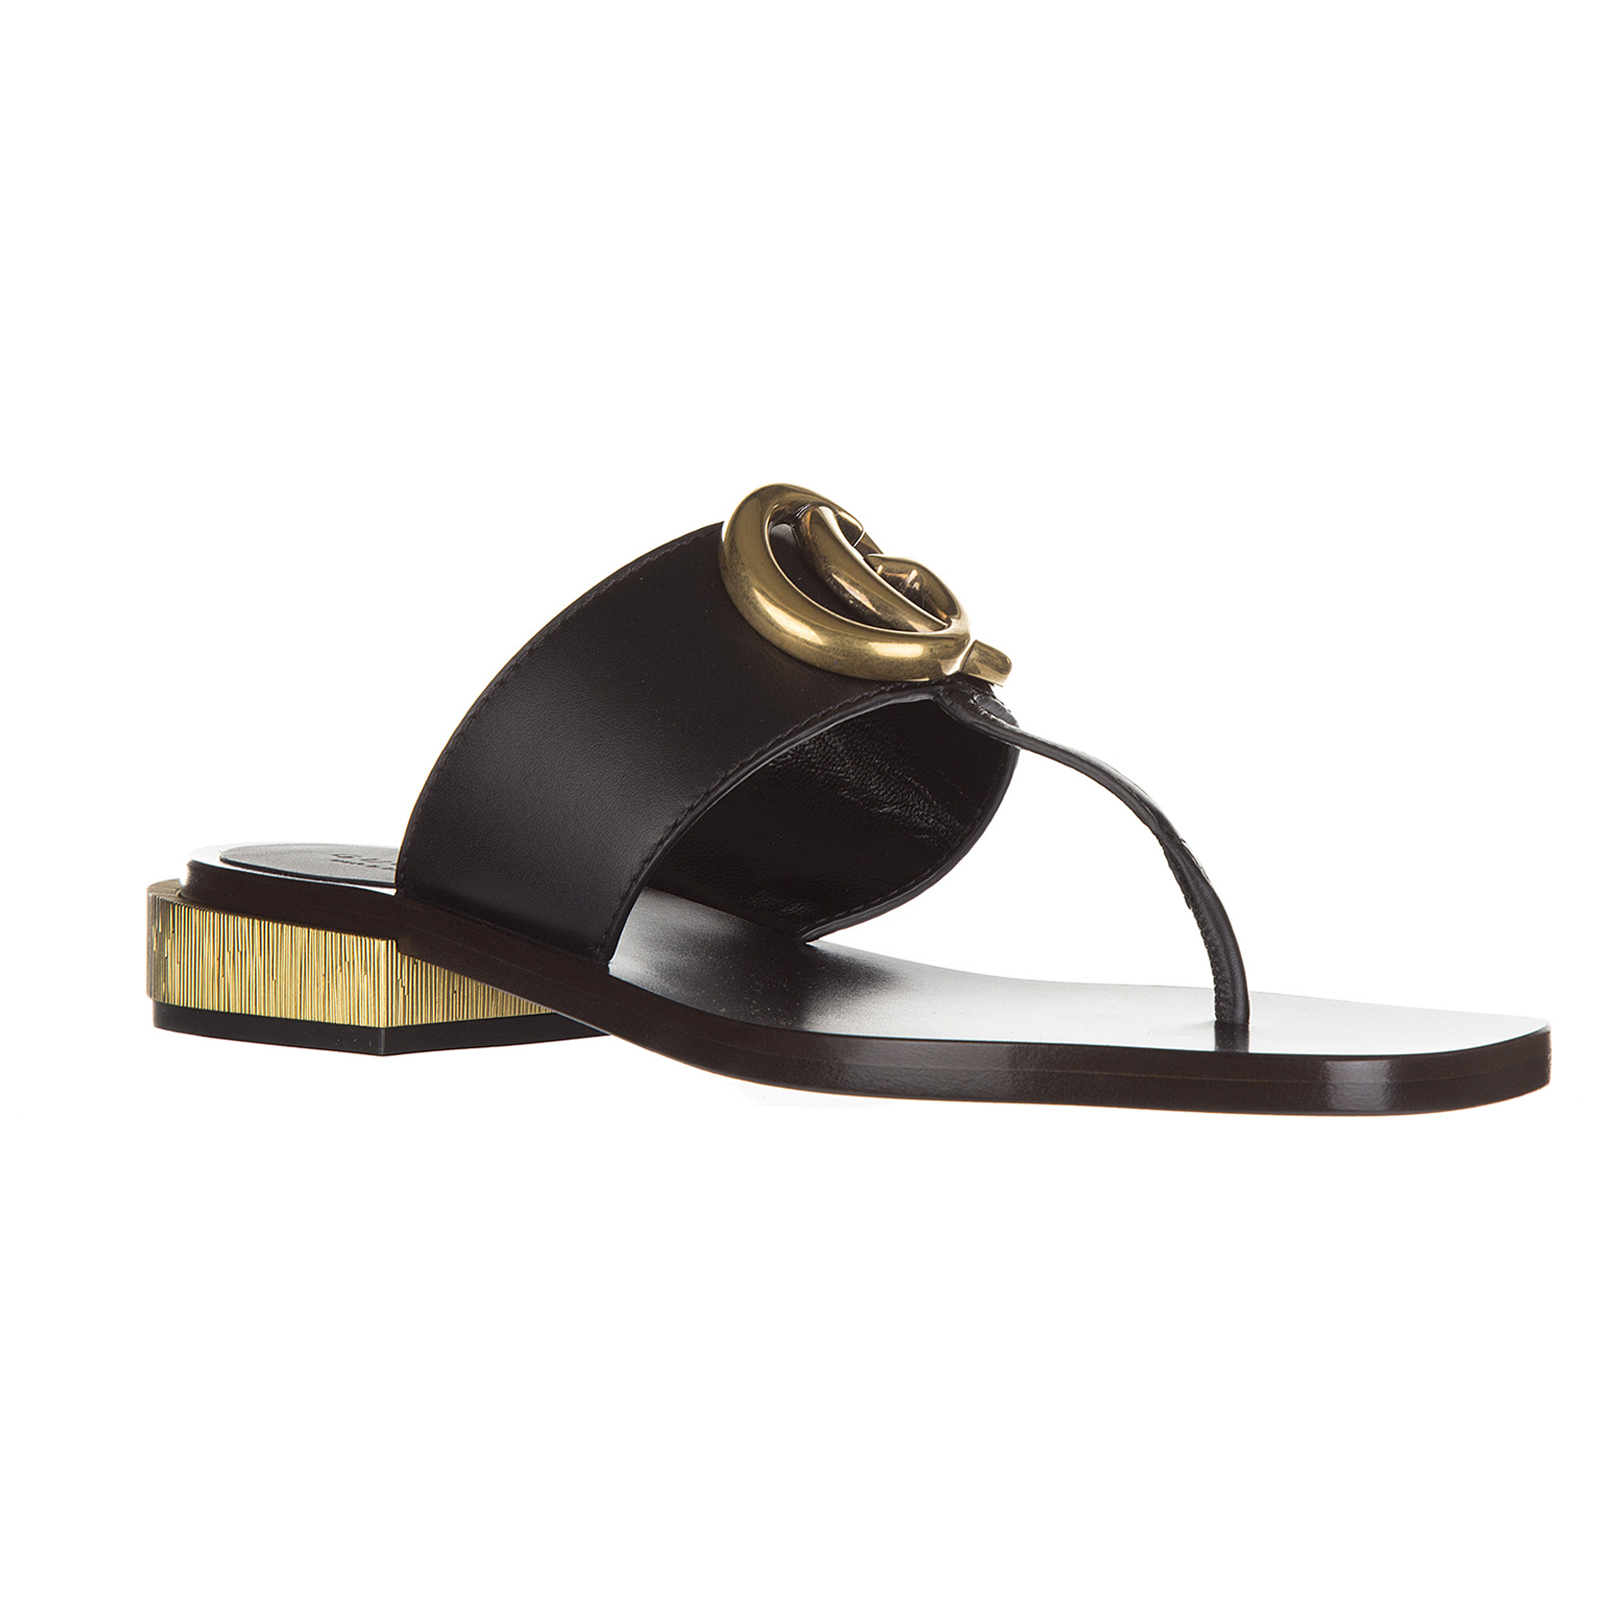 Women's leather flip flops sandals lifford